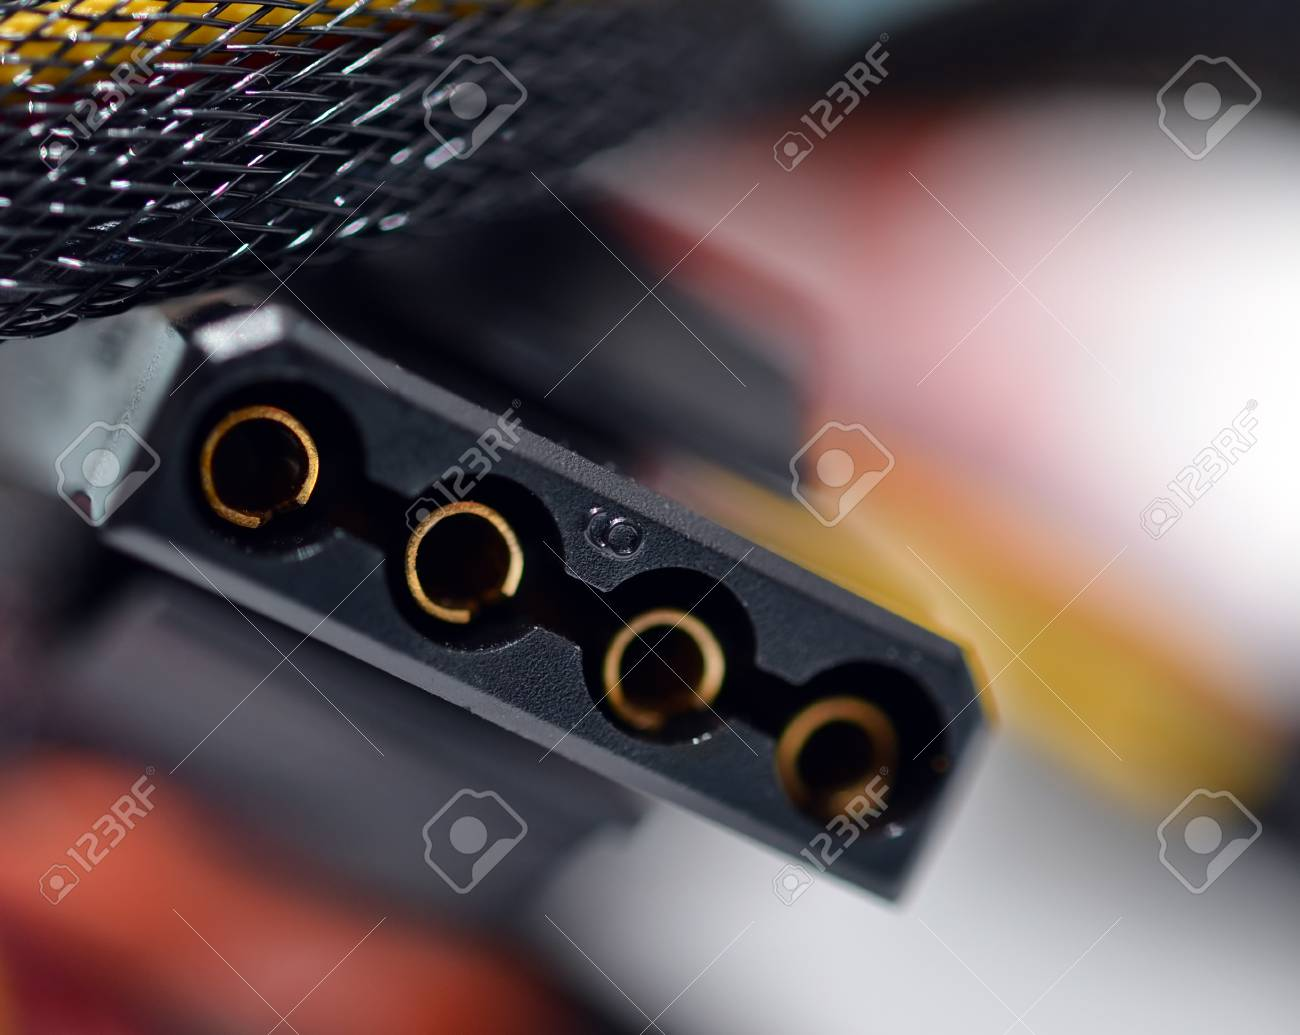 Computer cables with connector closeup Stock Photo - 9976014